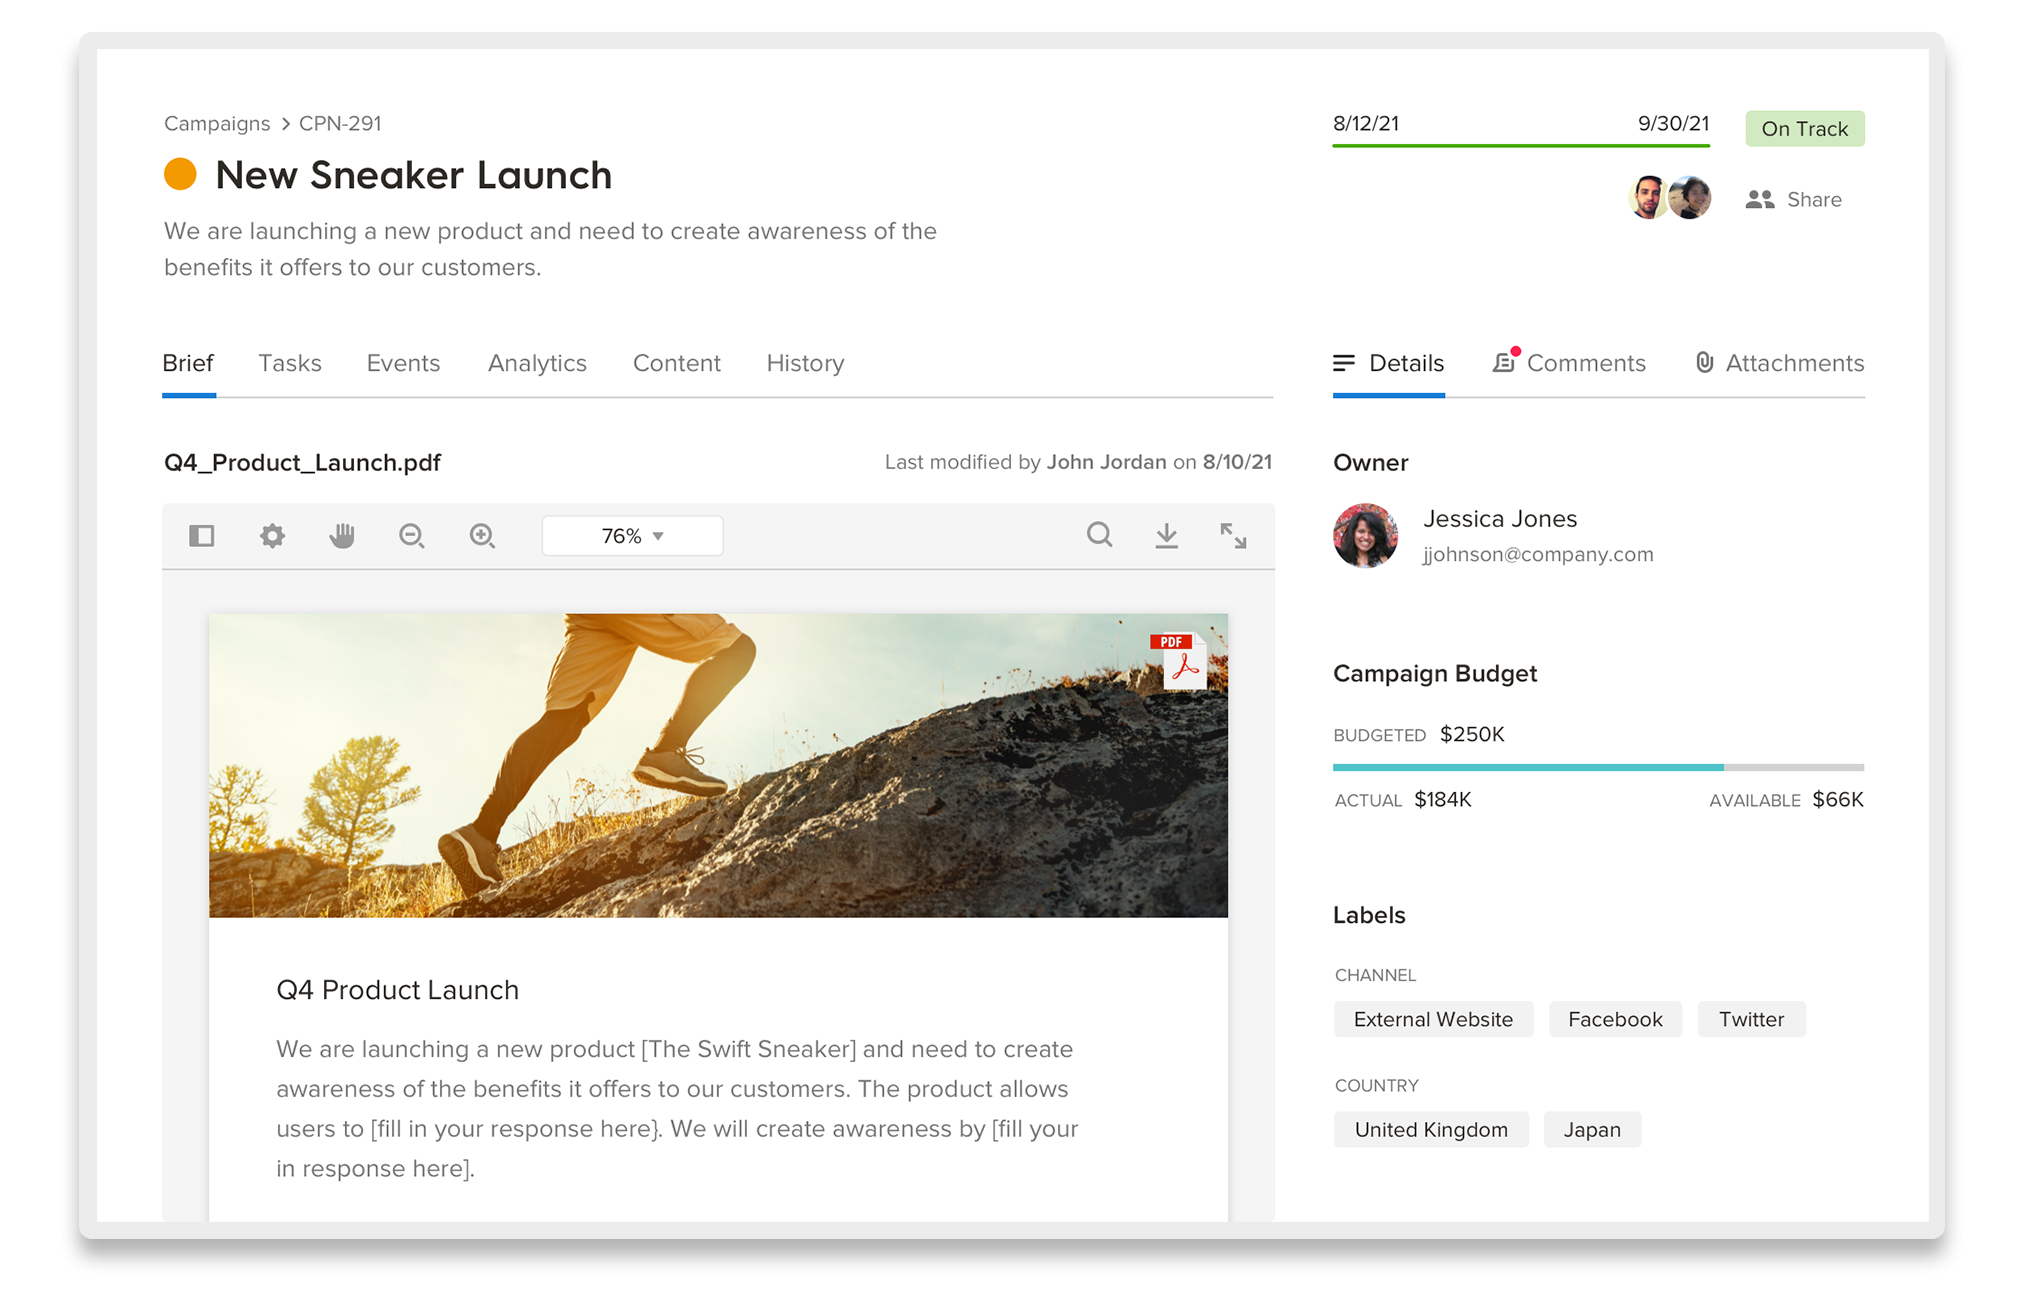 Welcome Campaign Management view